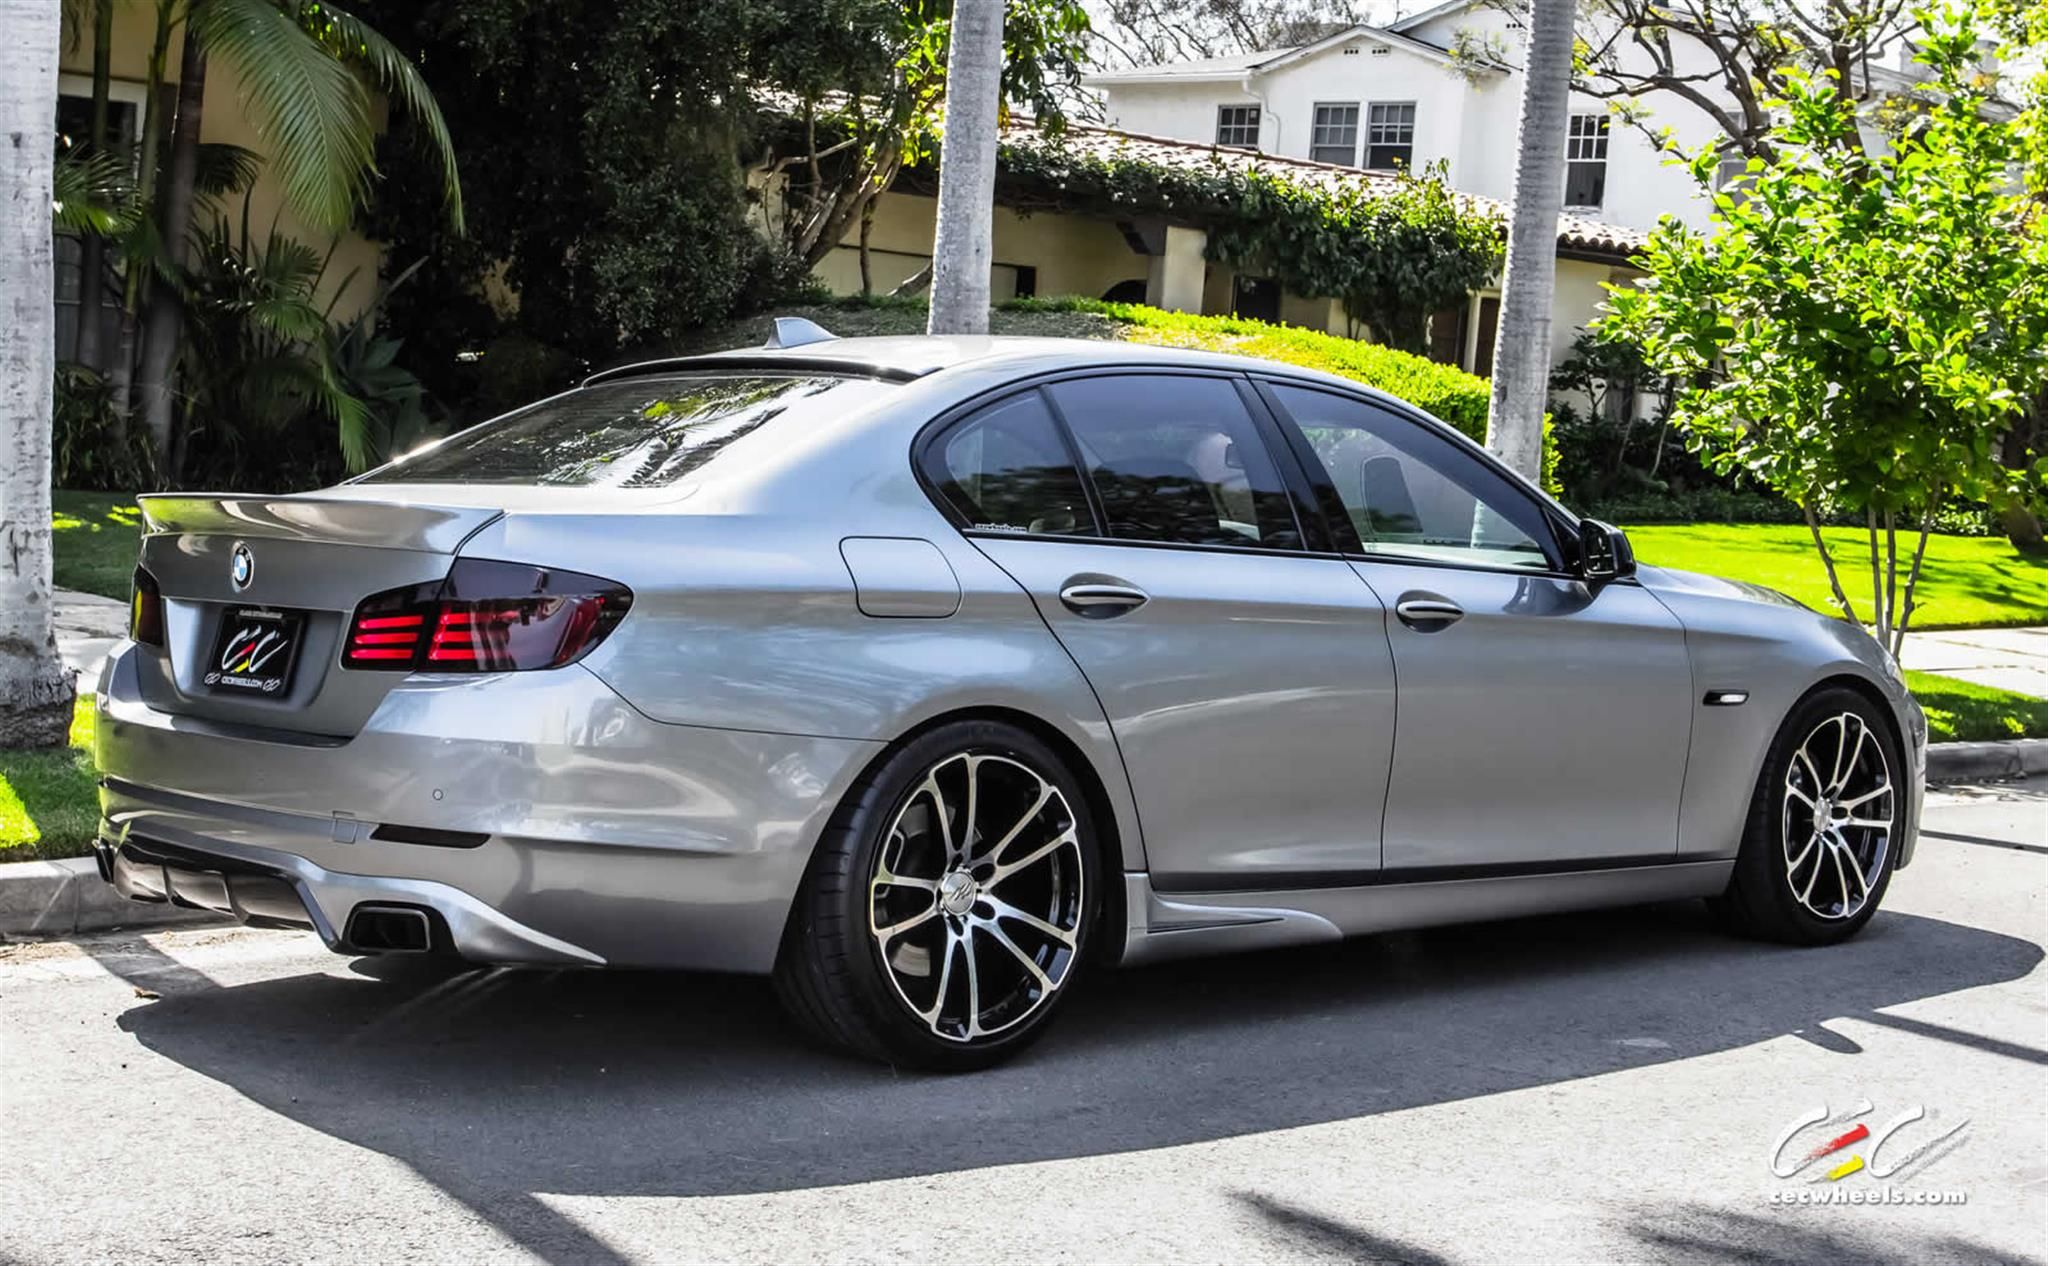 Bmw 535i By Cec In Los Angeles Ca With Images Bmw 535i Custom